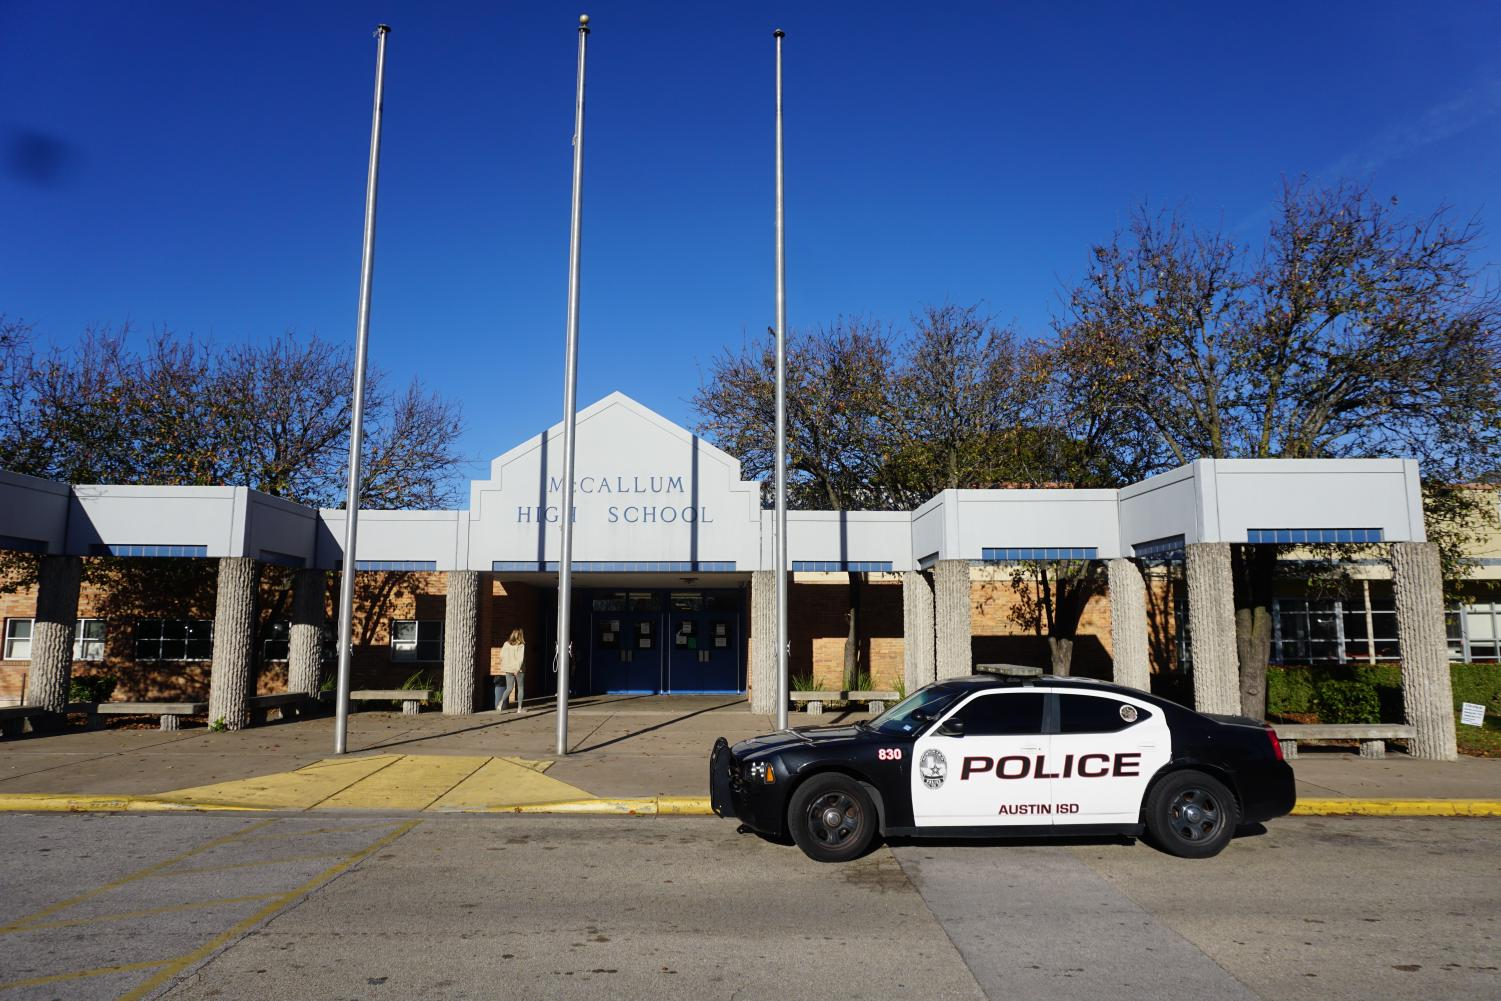 ALWAYS VIGILANT: Austin ISD Police car remaining on guard outside of McCallum. Although this car is mainly for show, police presence at McCallum is not. Photo by Tomas Marrero.